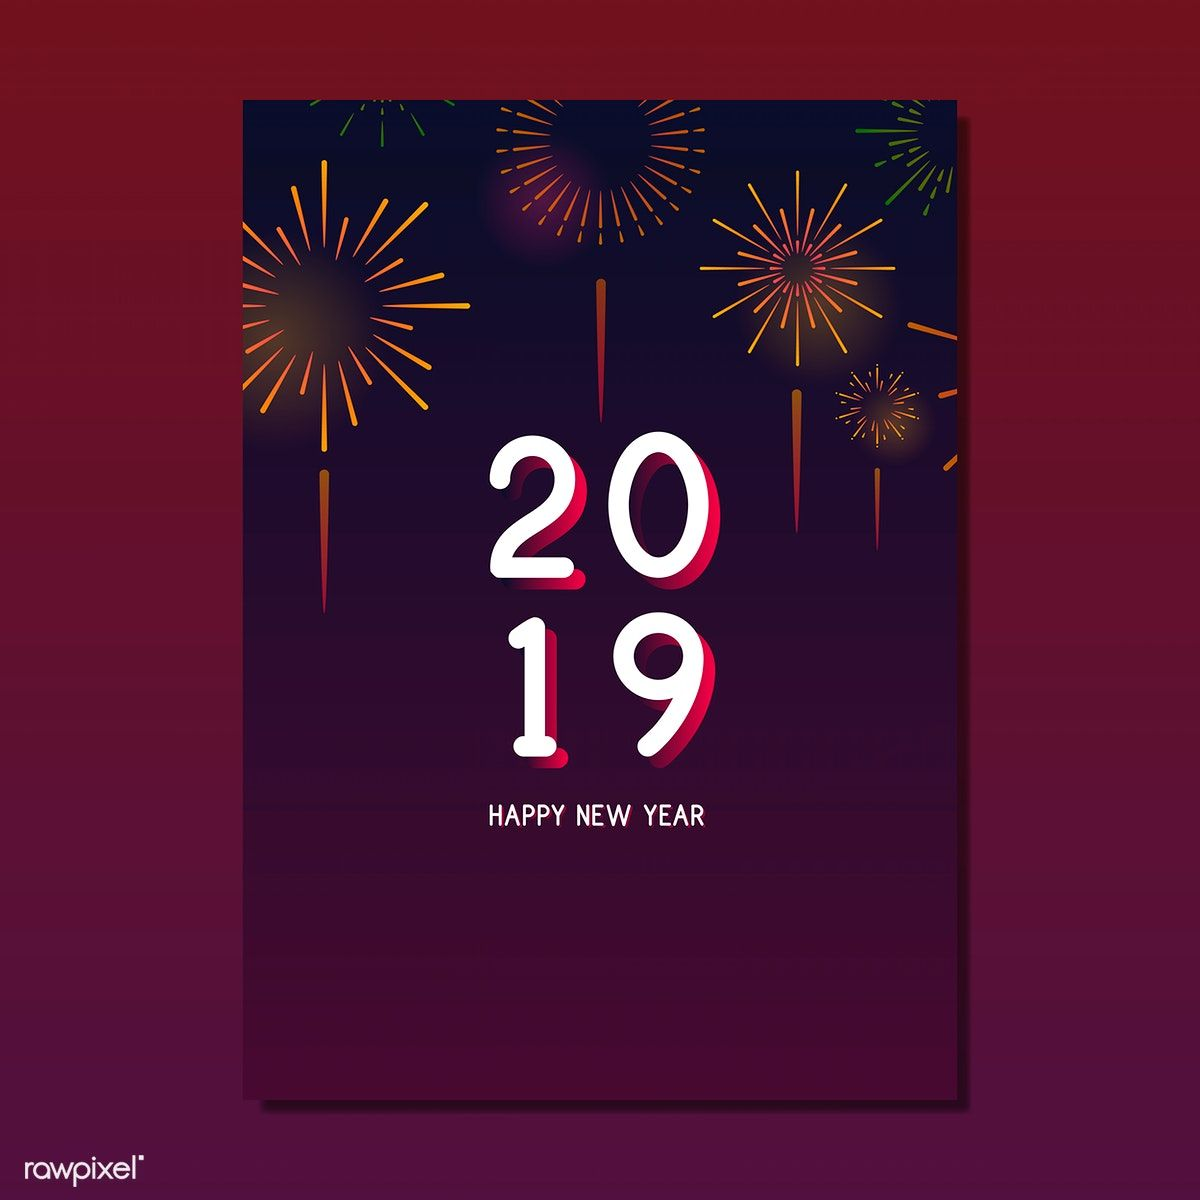 Happy New Year 2019 Greeting Card Vector Free Image By Rawpixel Com Ningzk V New Year Card Design Happy New Year 2019 Happy New Year